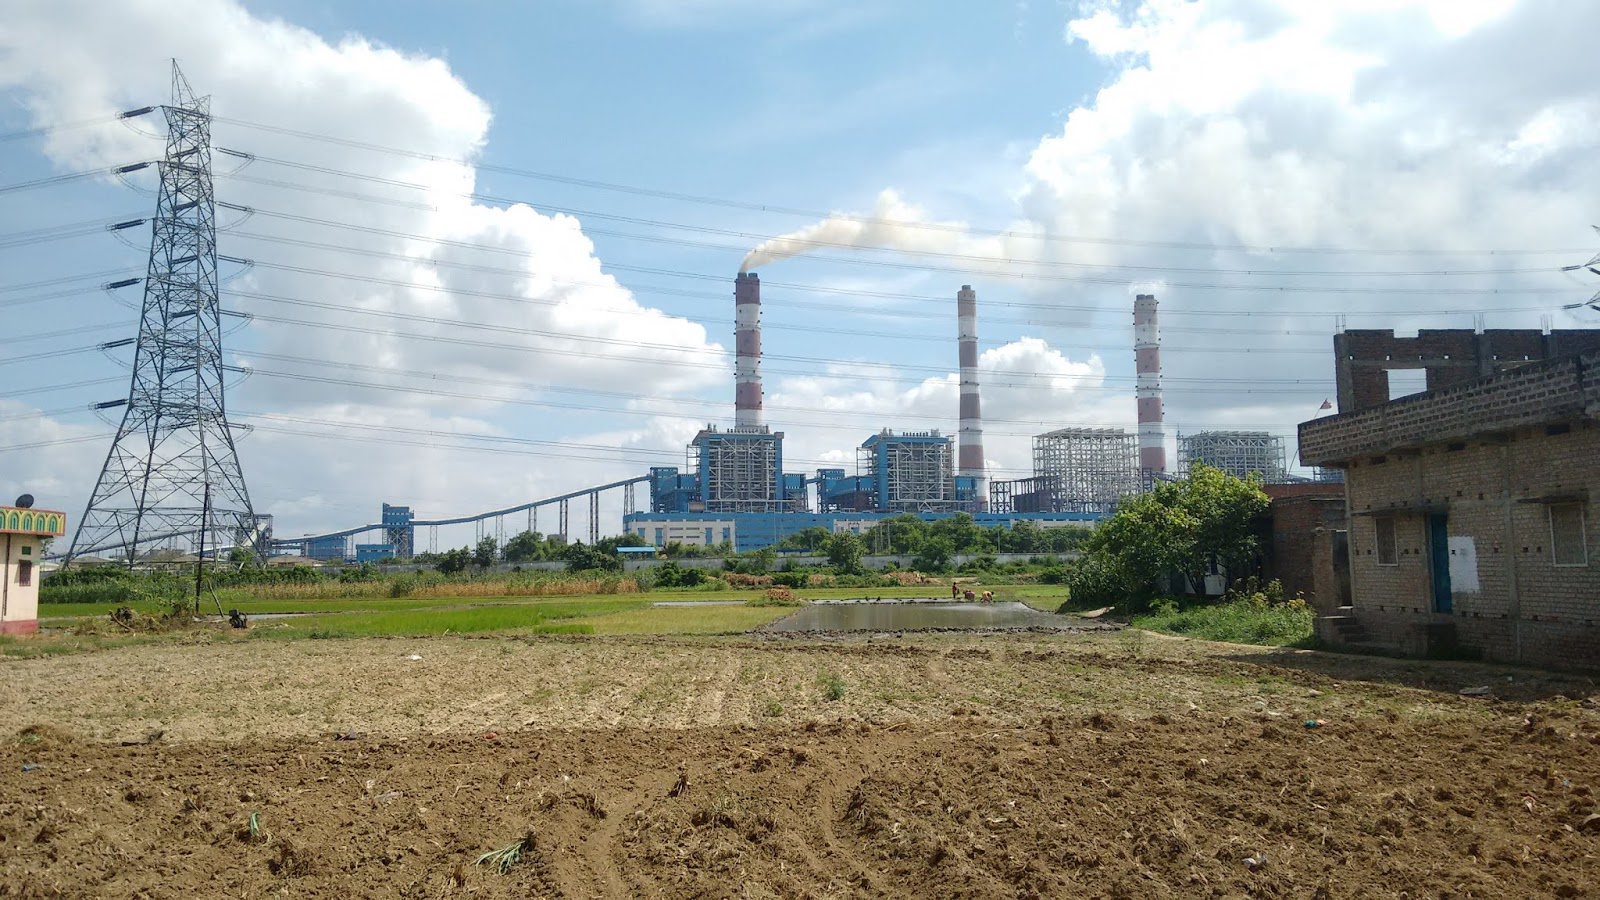 Barh Super Thermal Power Station